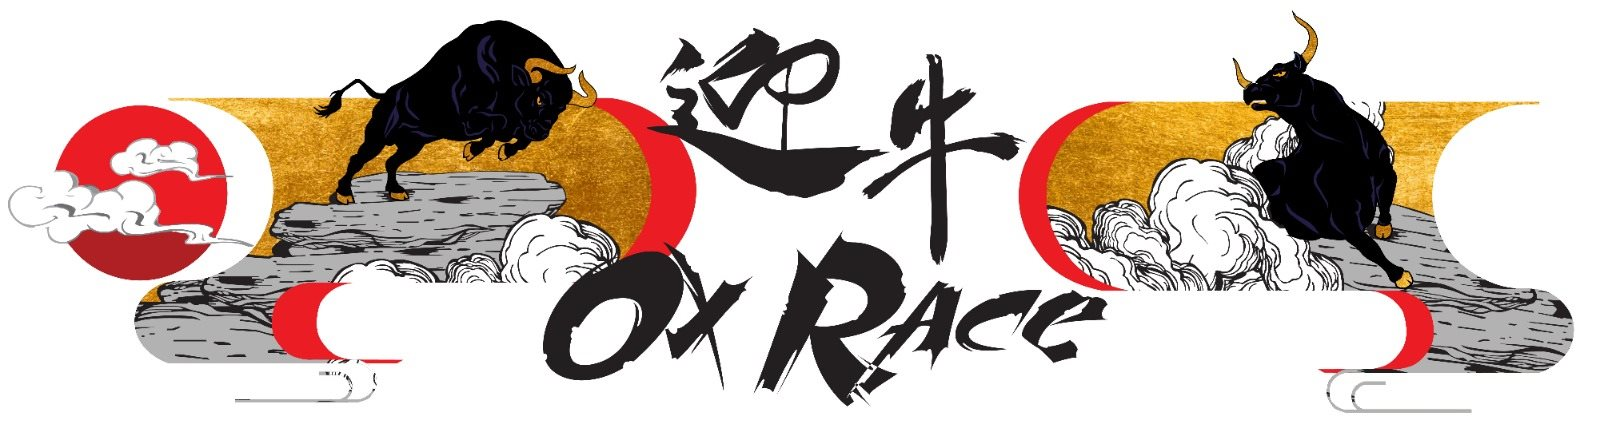 Ox Race Virtual Running 迎牛